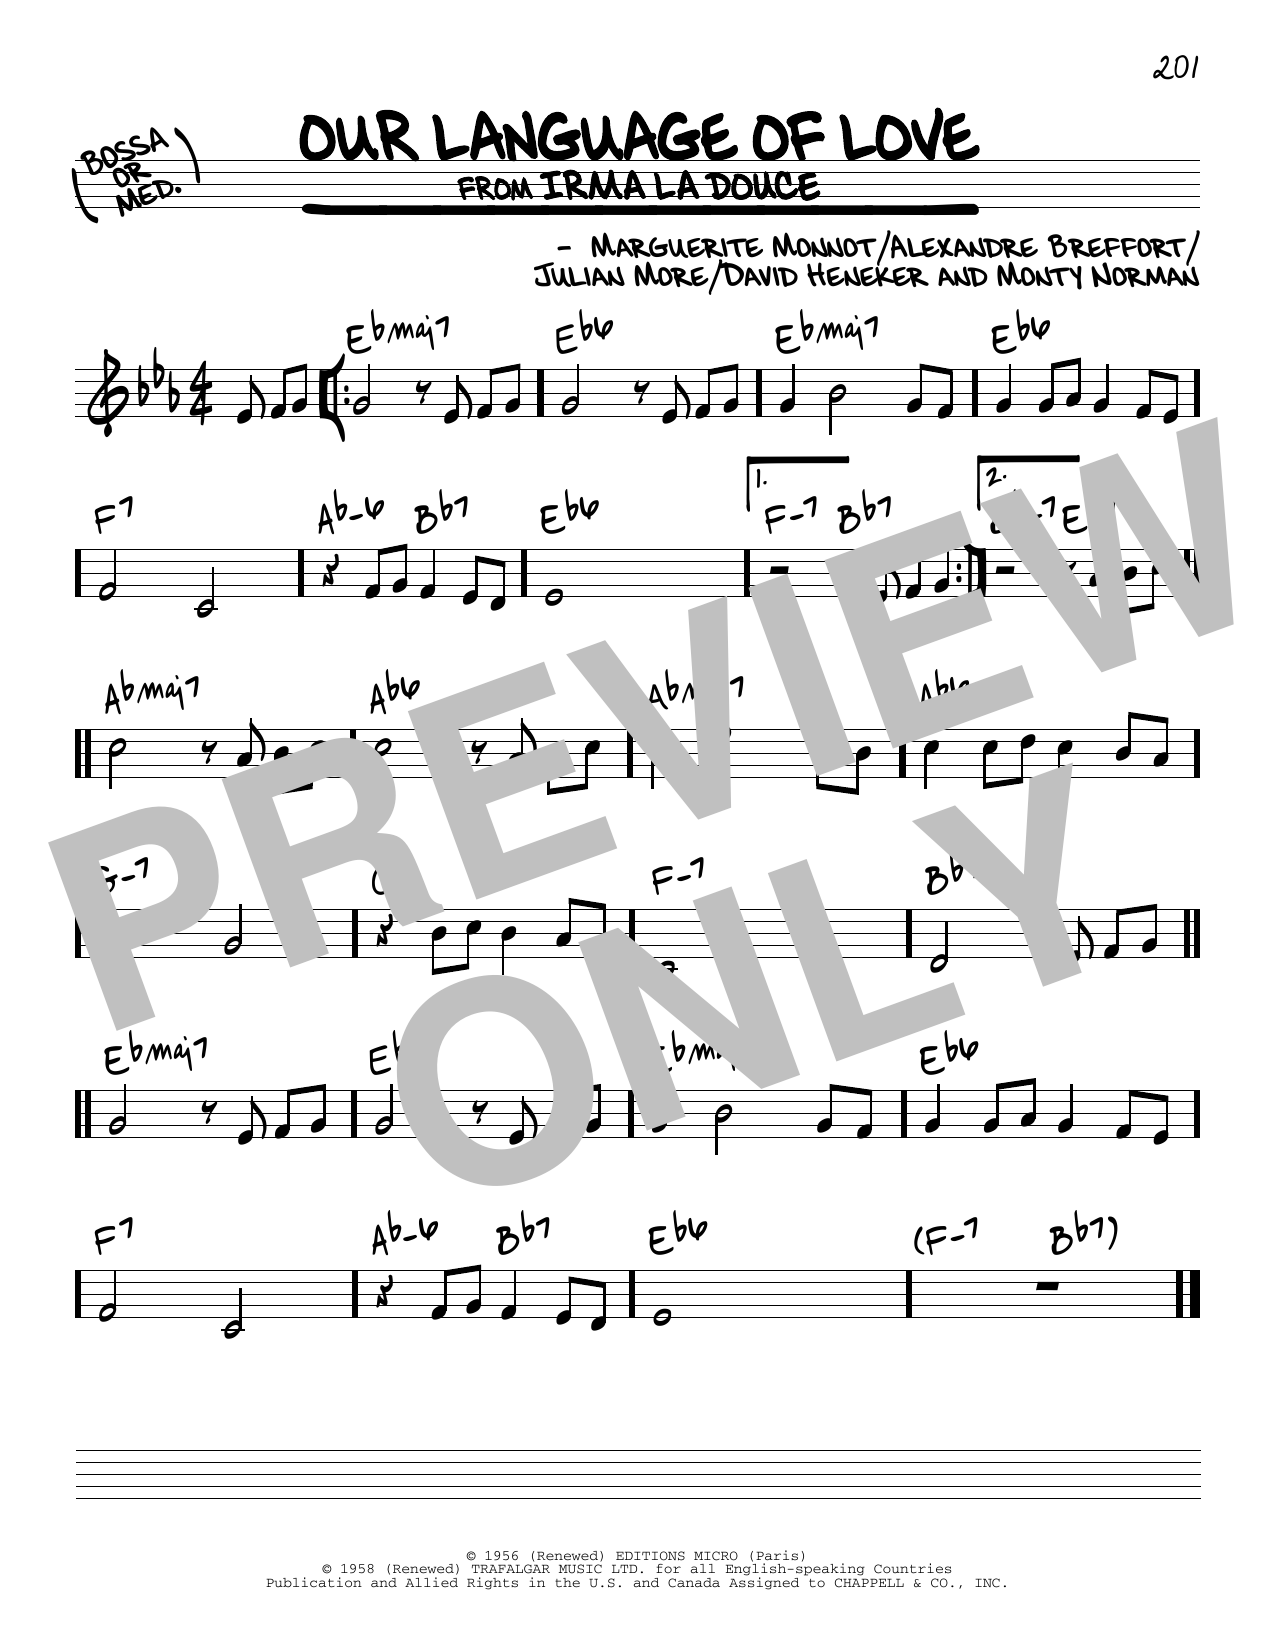 David Heneker Our Language Of Love sheet music notes and chords. Download Printable PDF.